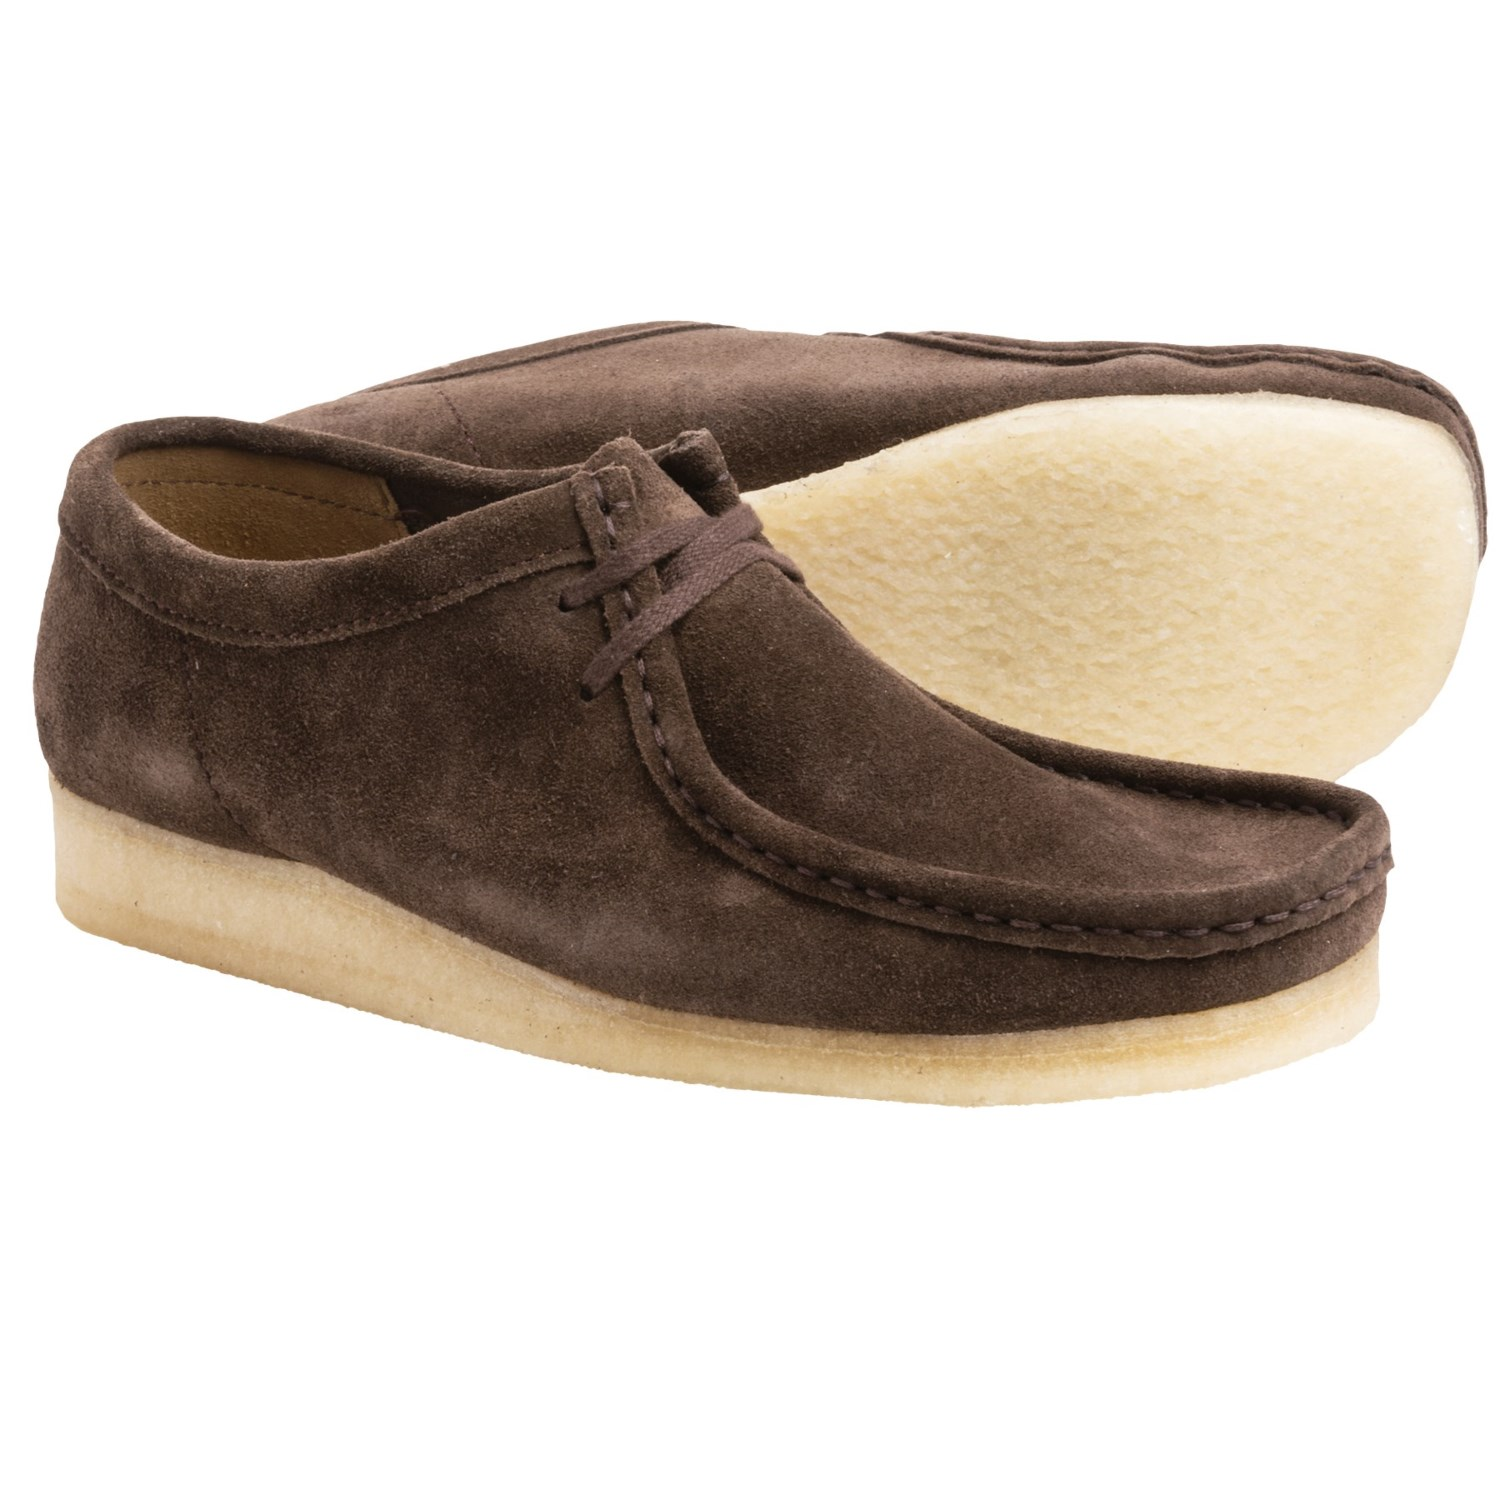 shoes similar to clarks wallabees innovaide